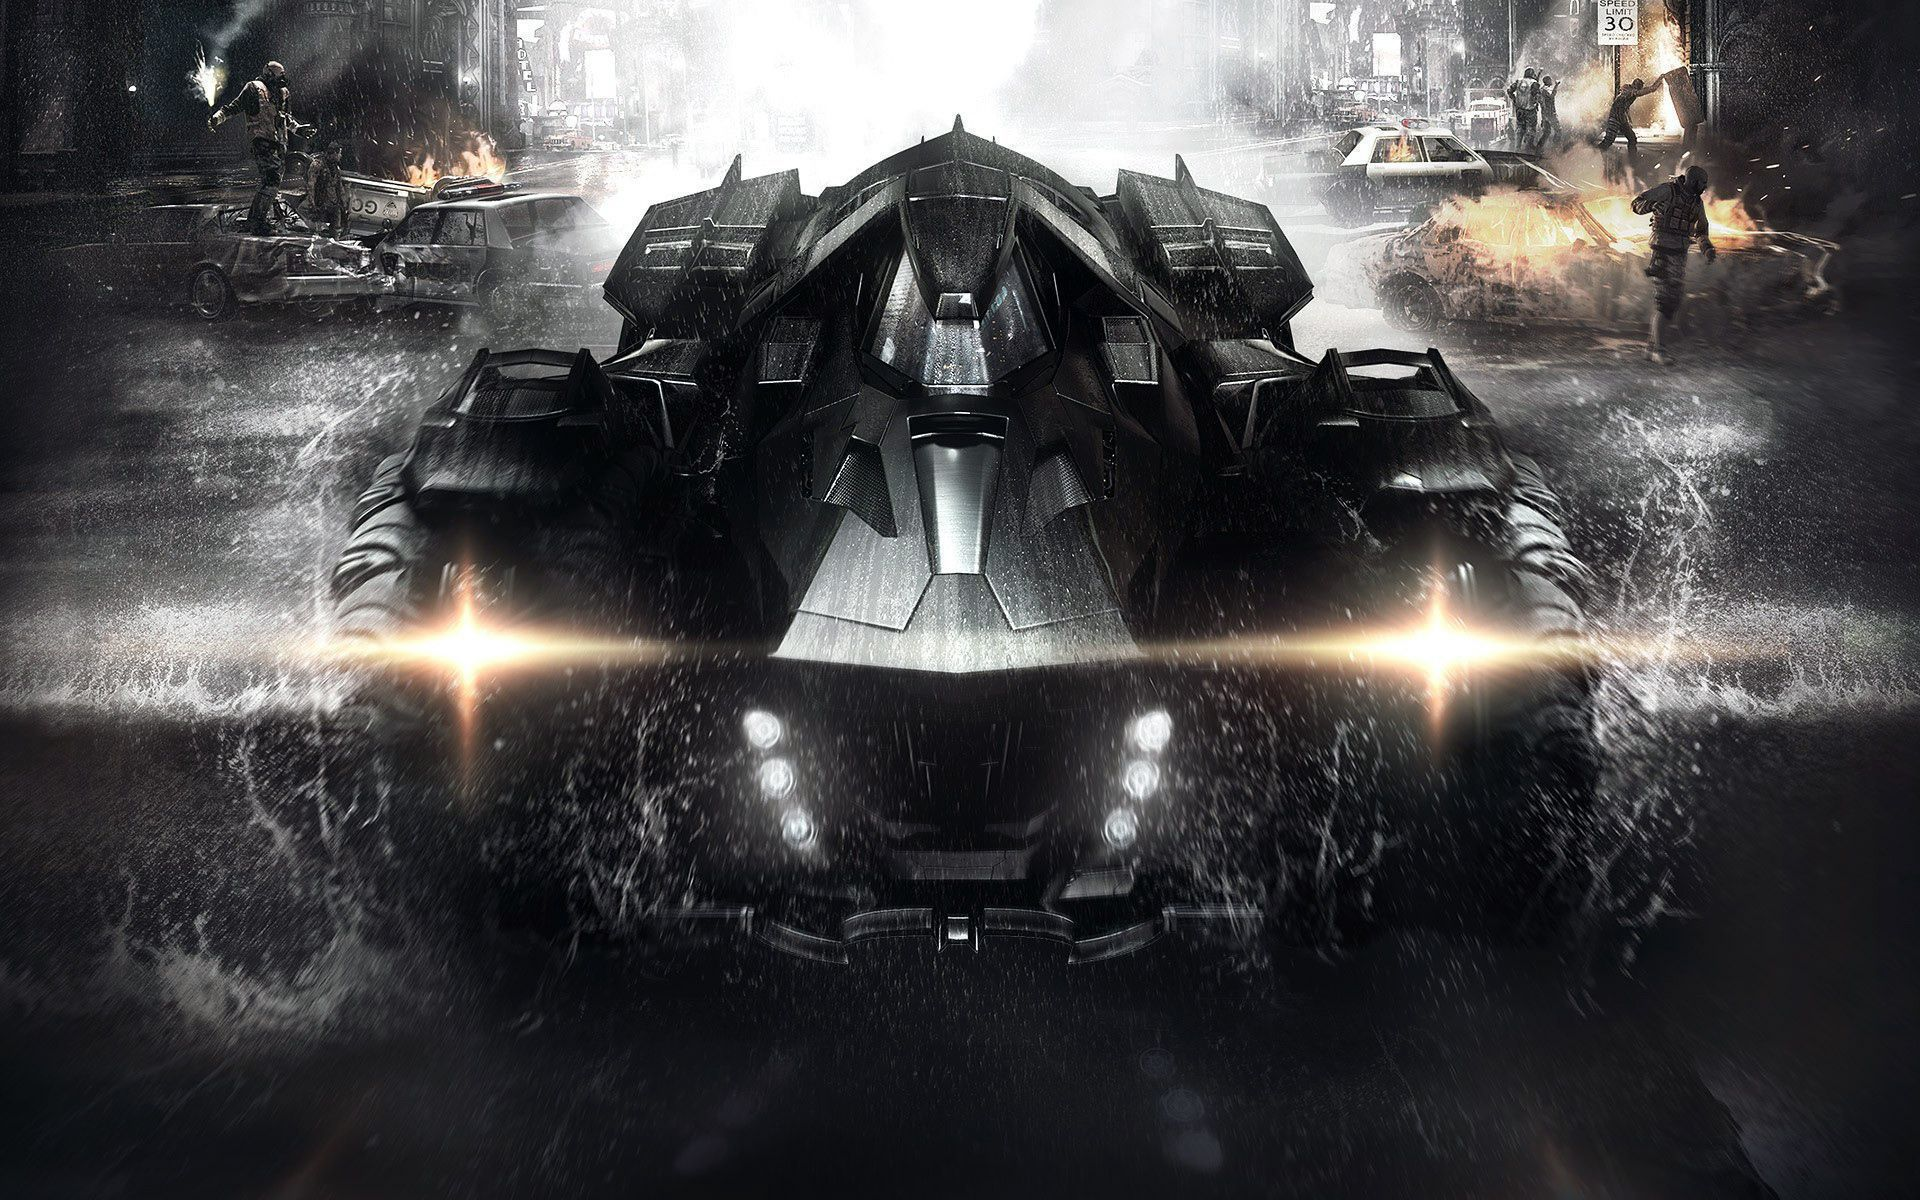 Batmobile High Quality Wallpapers